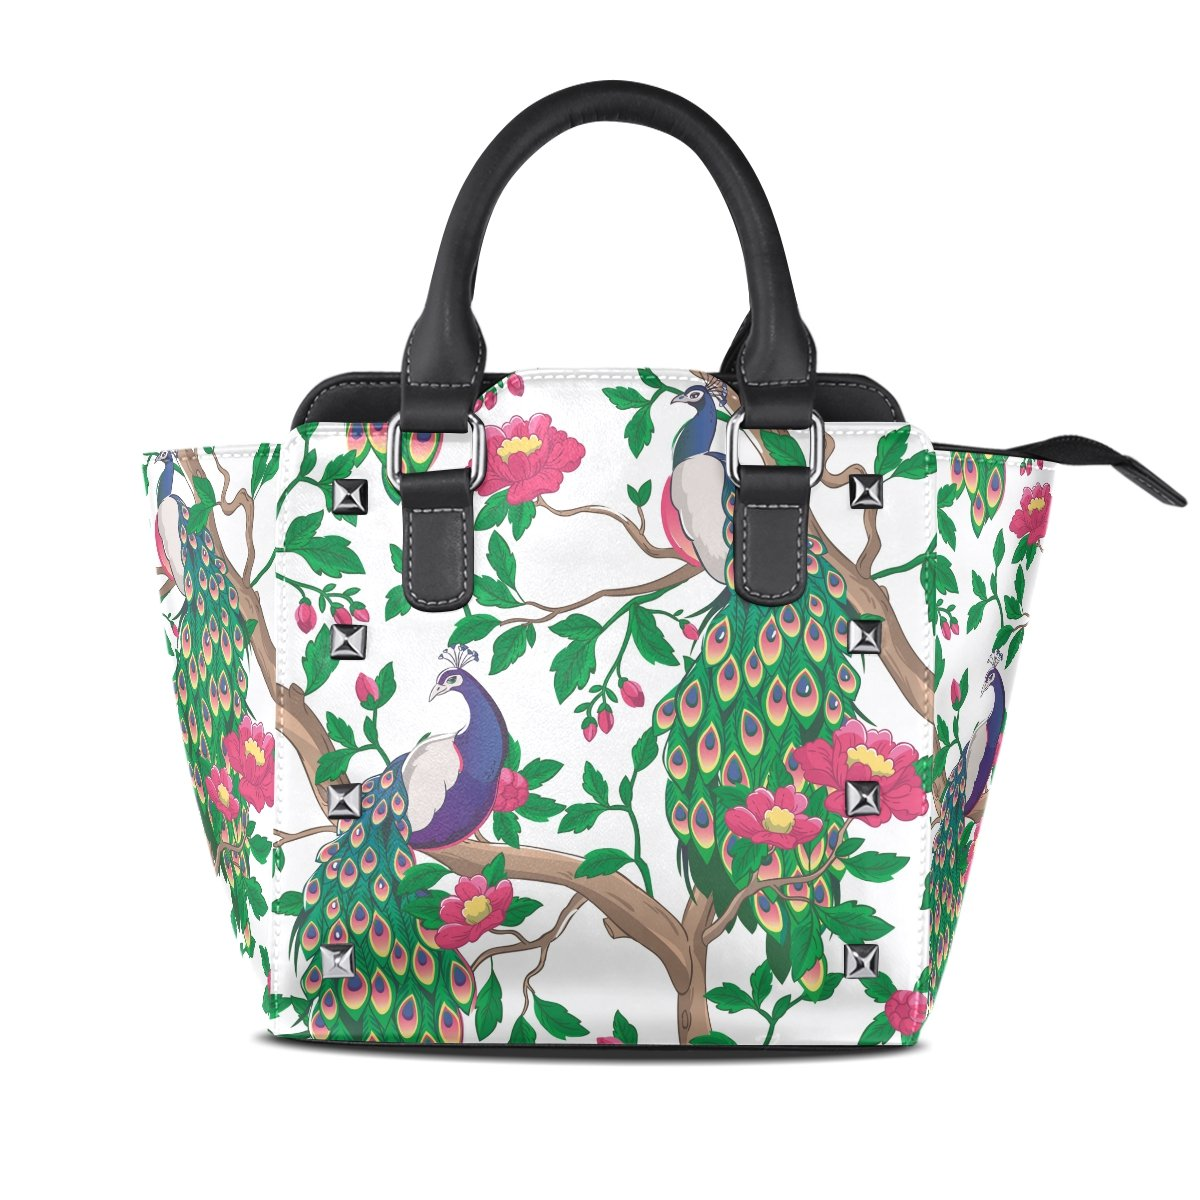 Womens Genuine Leather Hangbags Tote Bags Peacock Purse Shoulder Bags